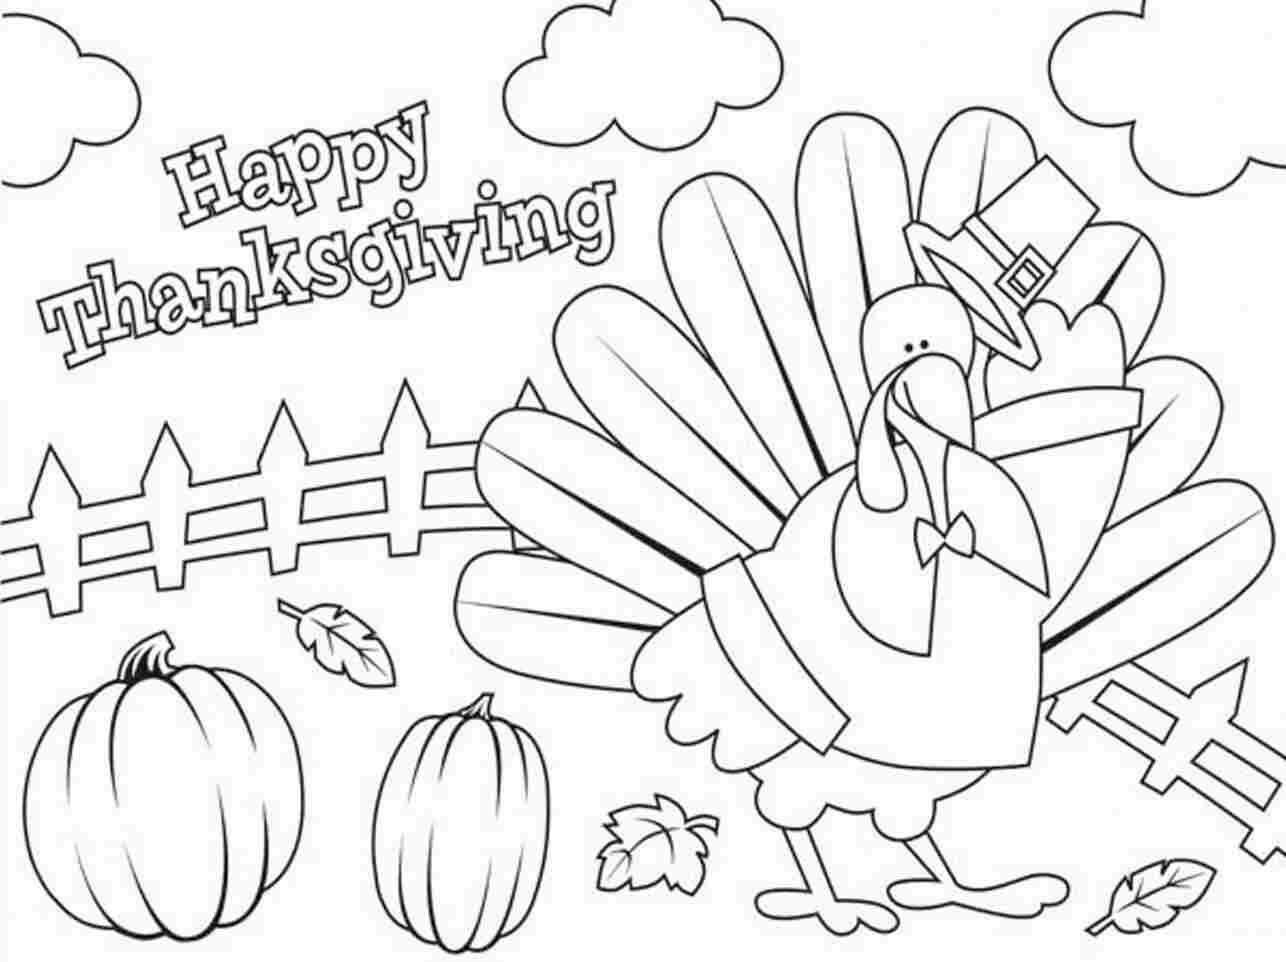 Printable Happy Thanksgiving Coloring Pages Free Download